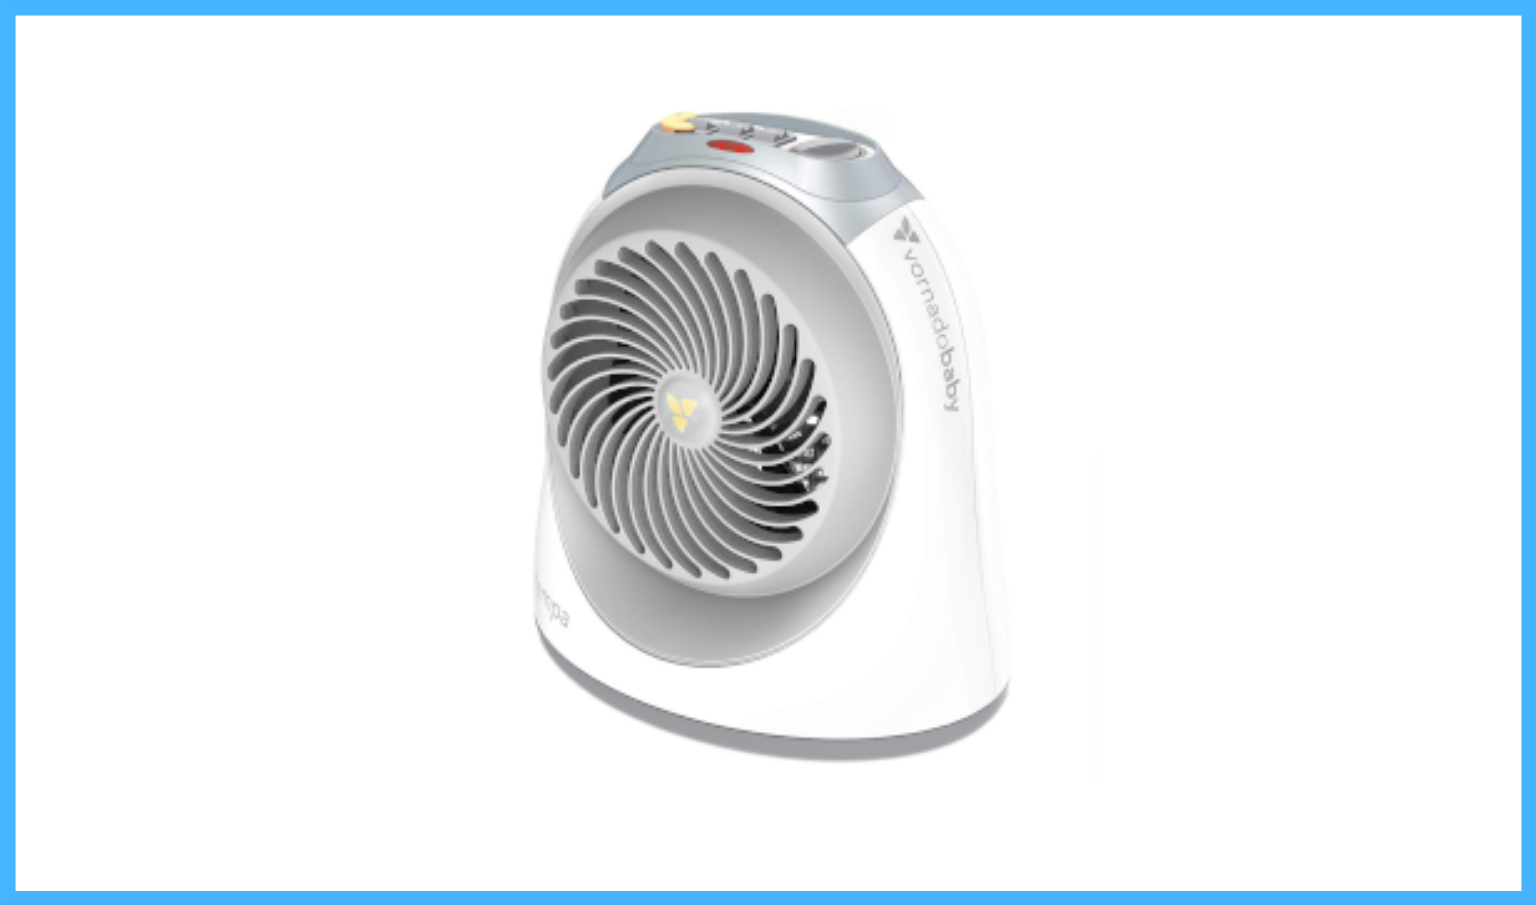 Best Heater for Baby Room